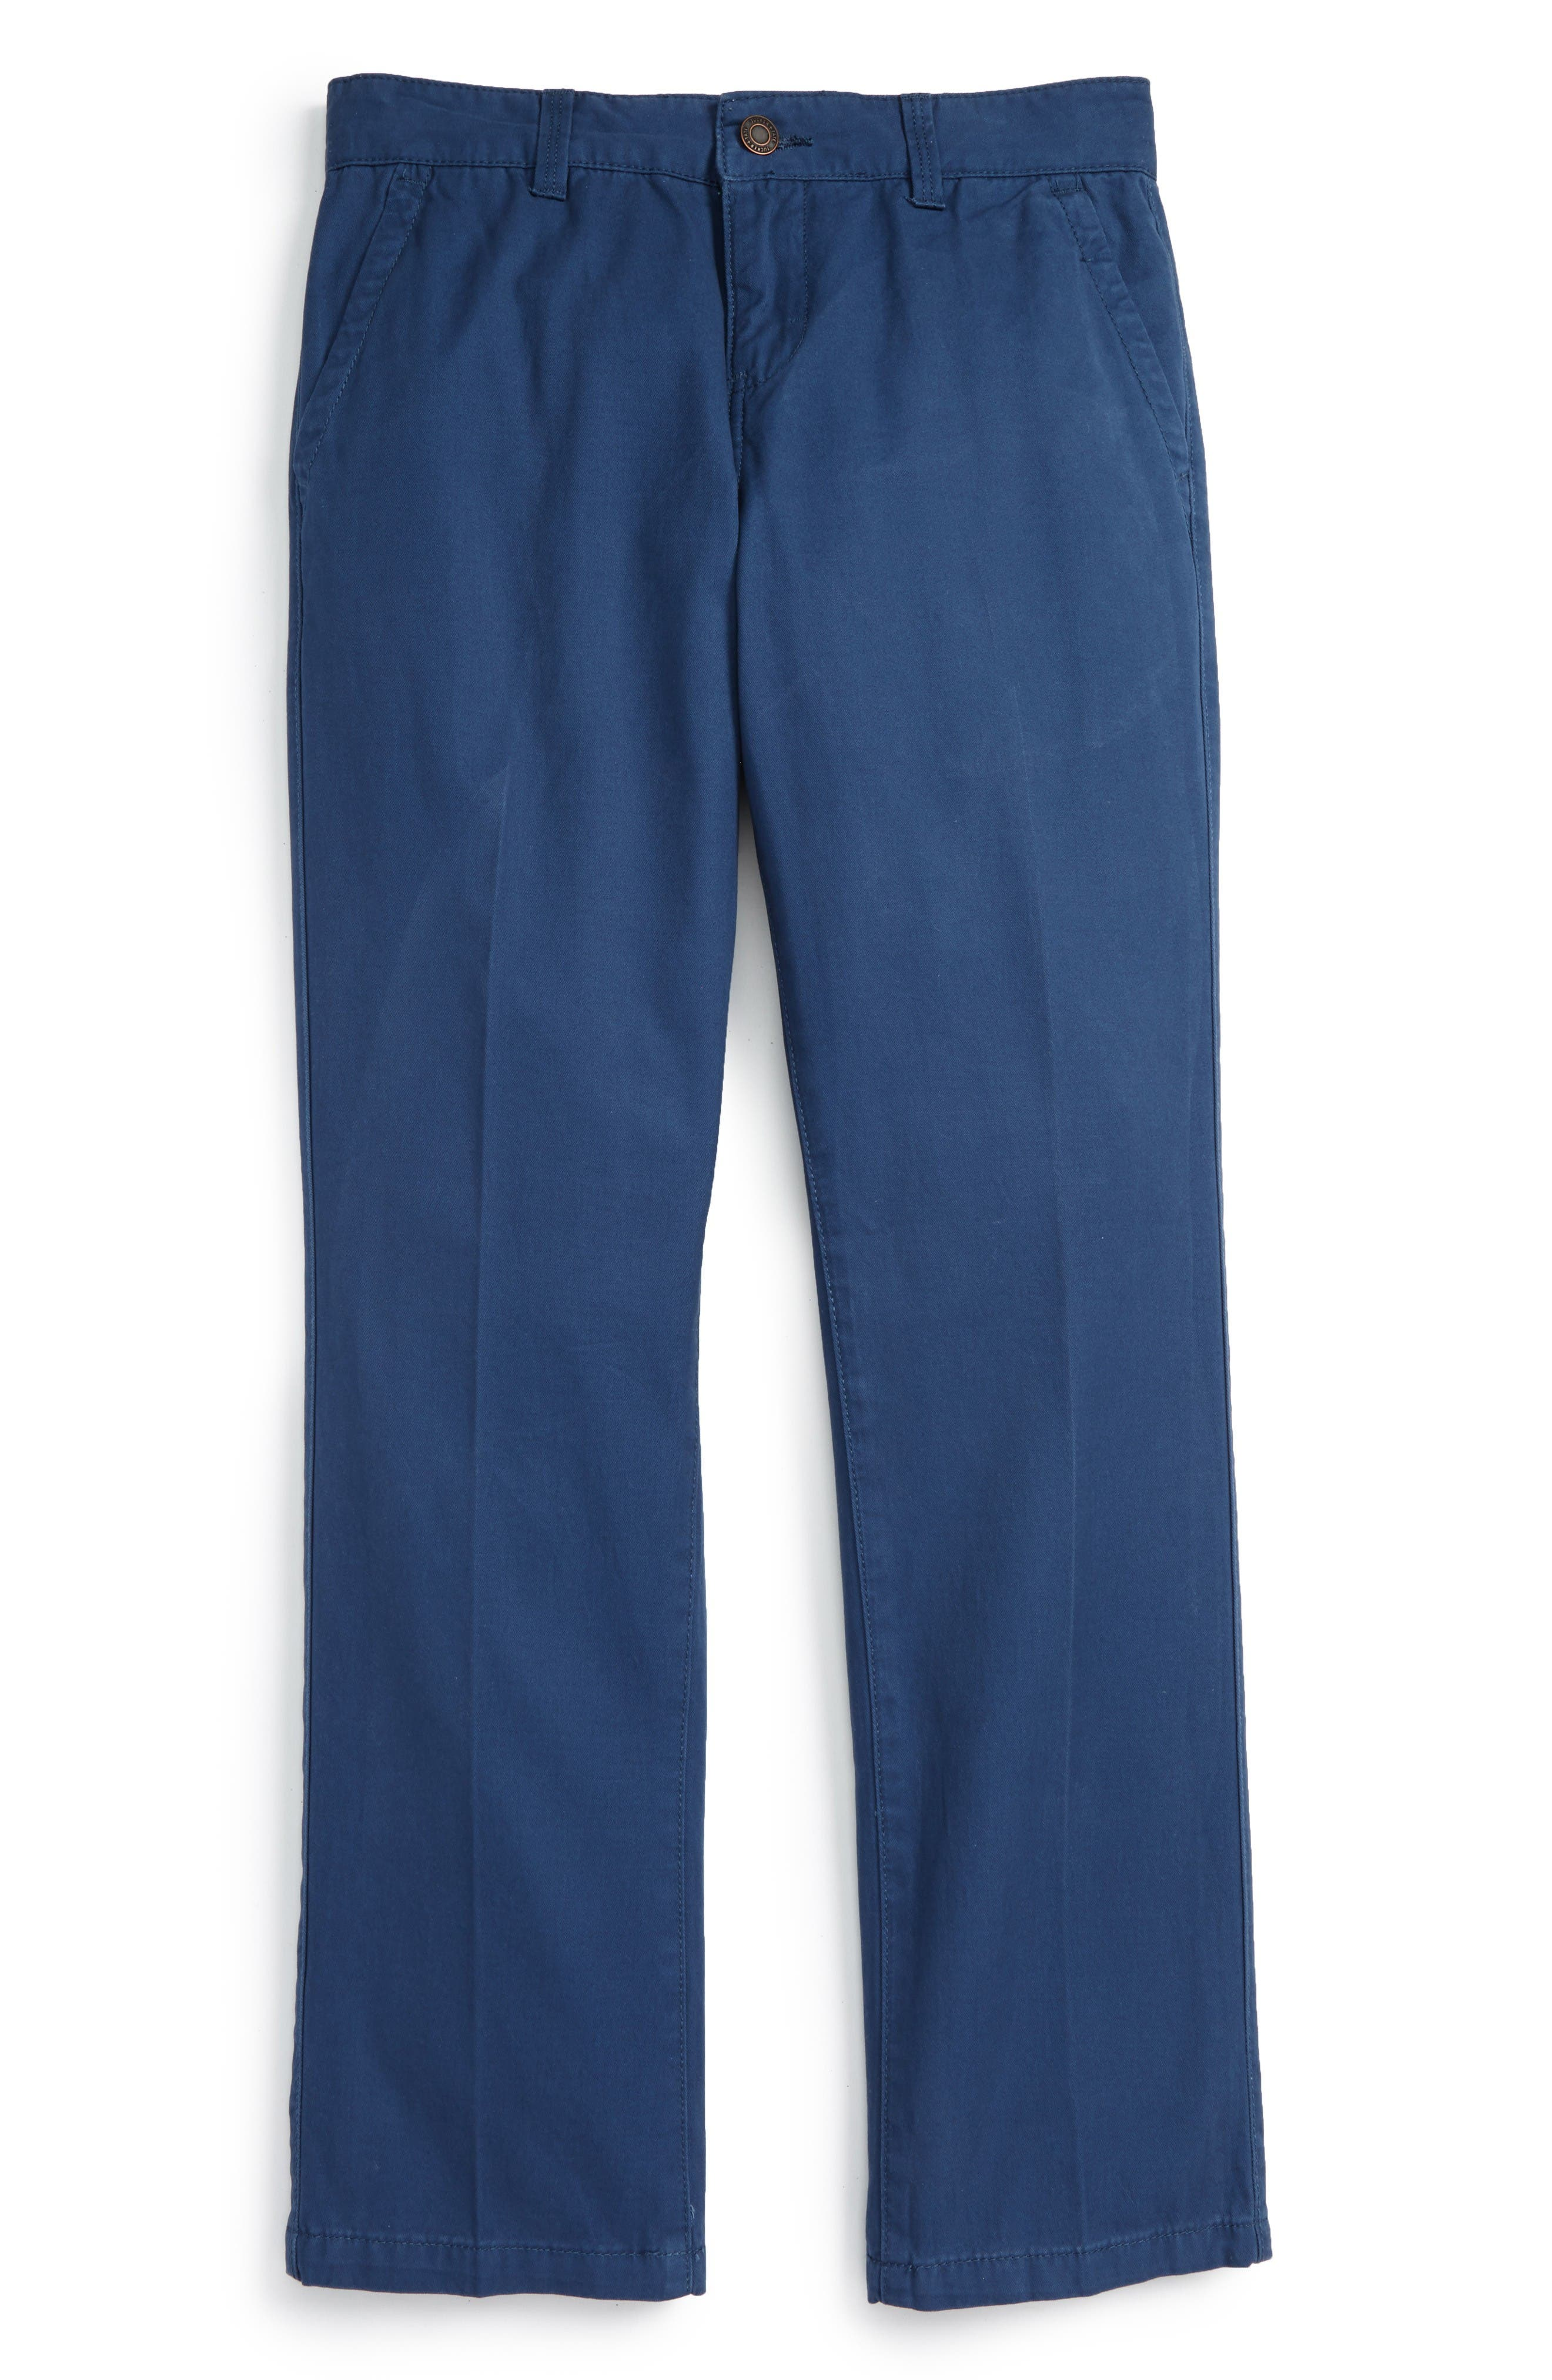 Tucker + Tate 'Thomas' Twill Chino Pants (Toddler Boys, Little Boys & Big Boys)